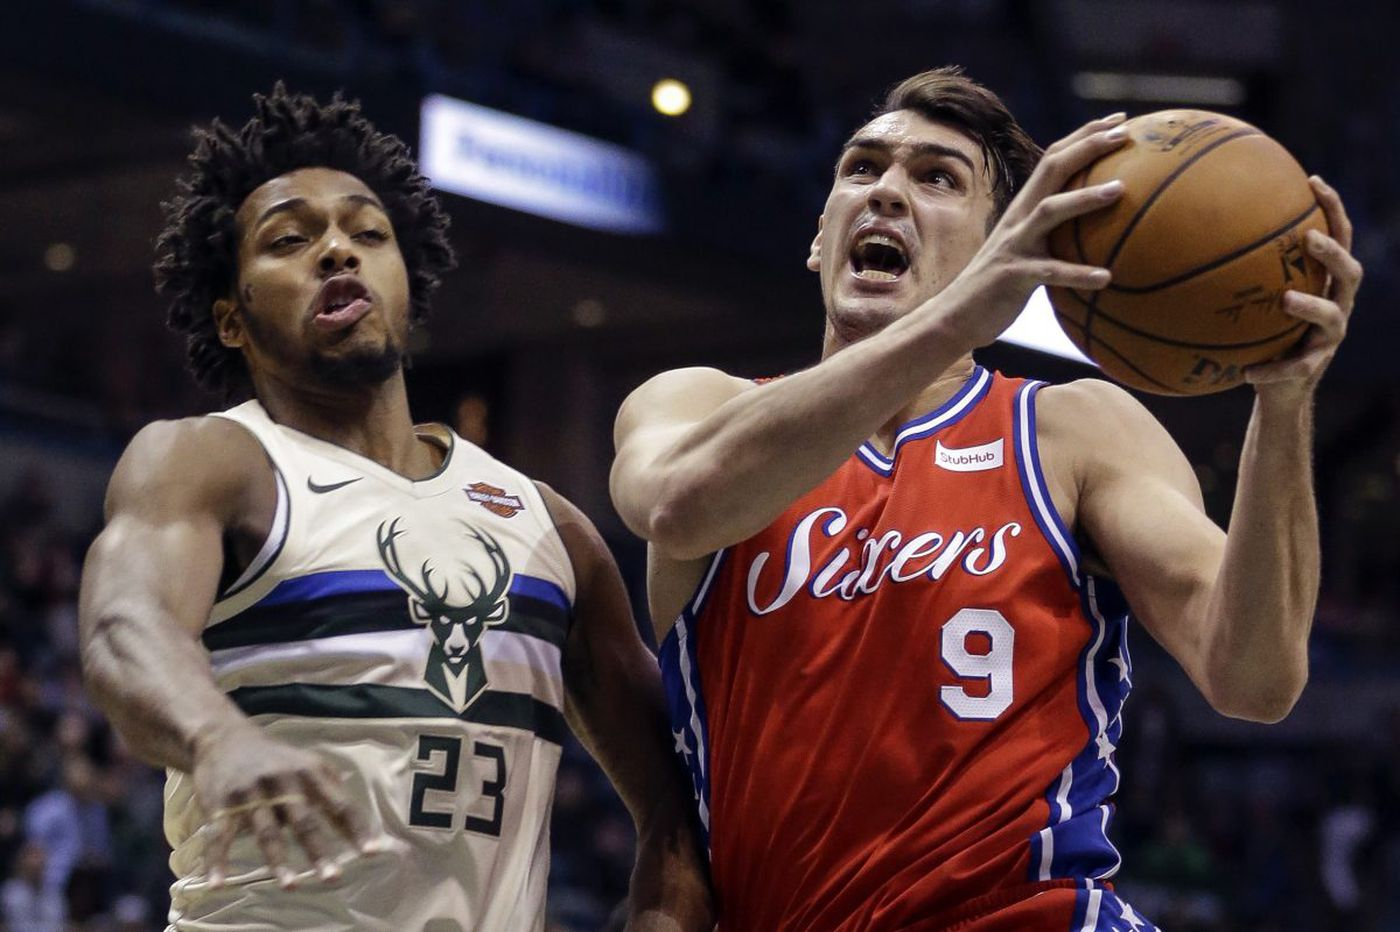 Sixers-Bucks observations: Giannis Antetokounmpo, T.J. McConnell, three-point woes